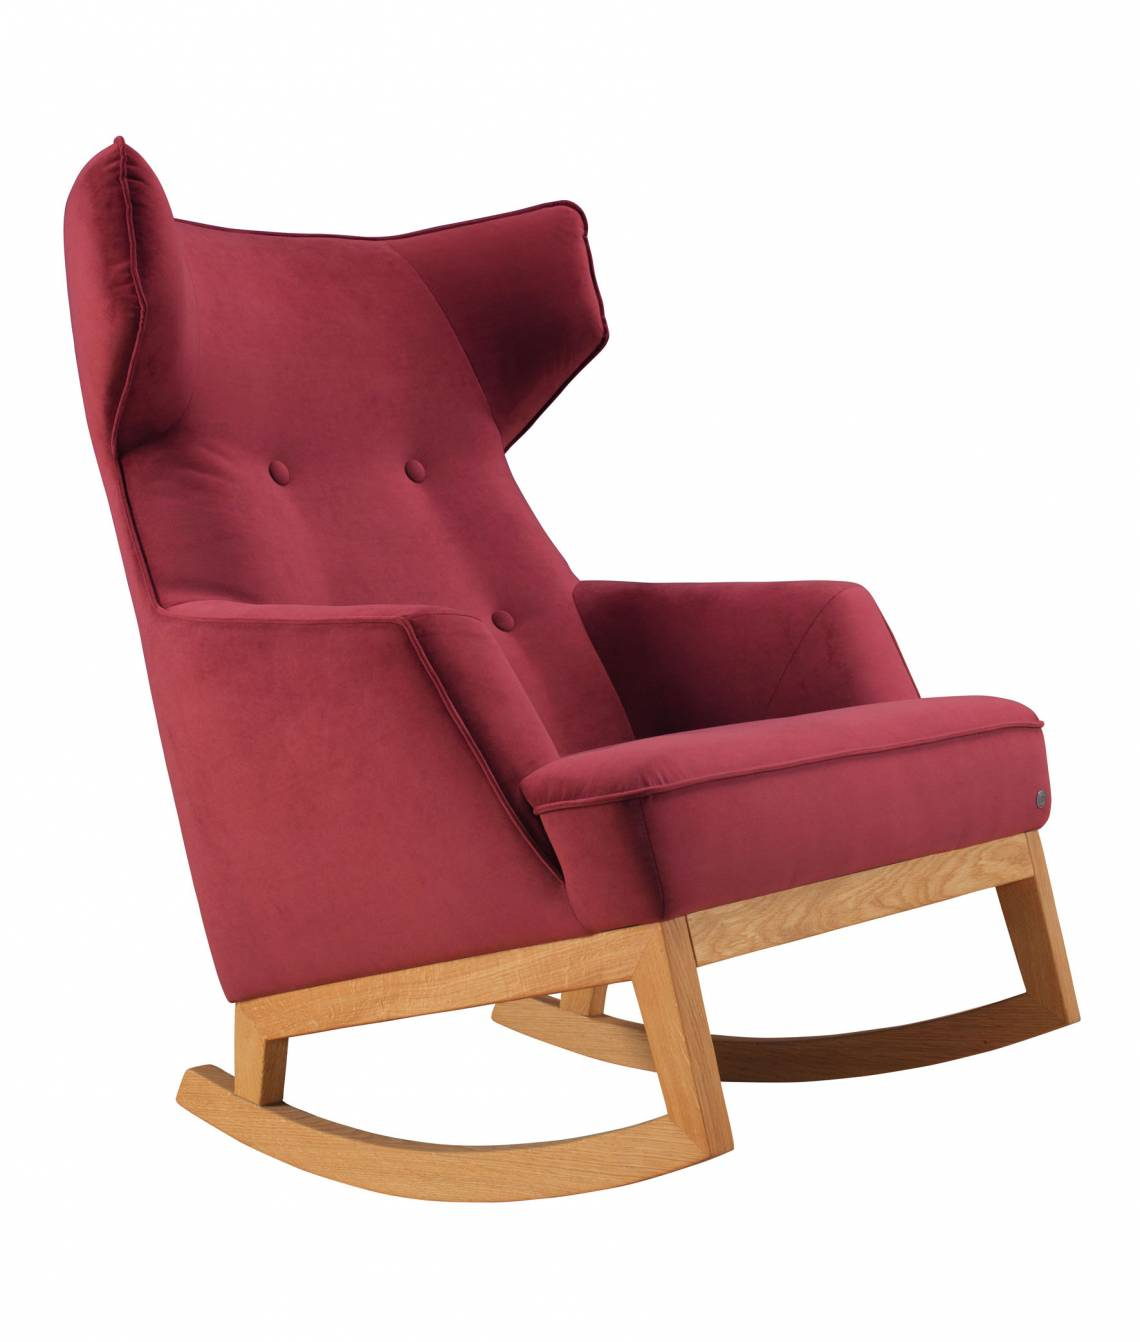 Tom Tailor Schaukelstuhl  COZY ROCKING CHAIR / TSV07